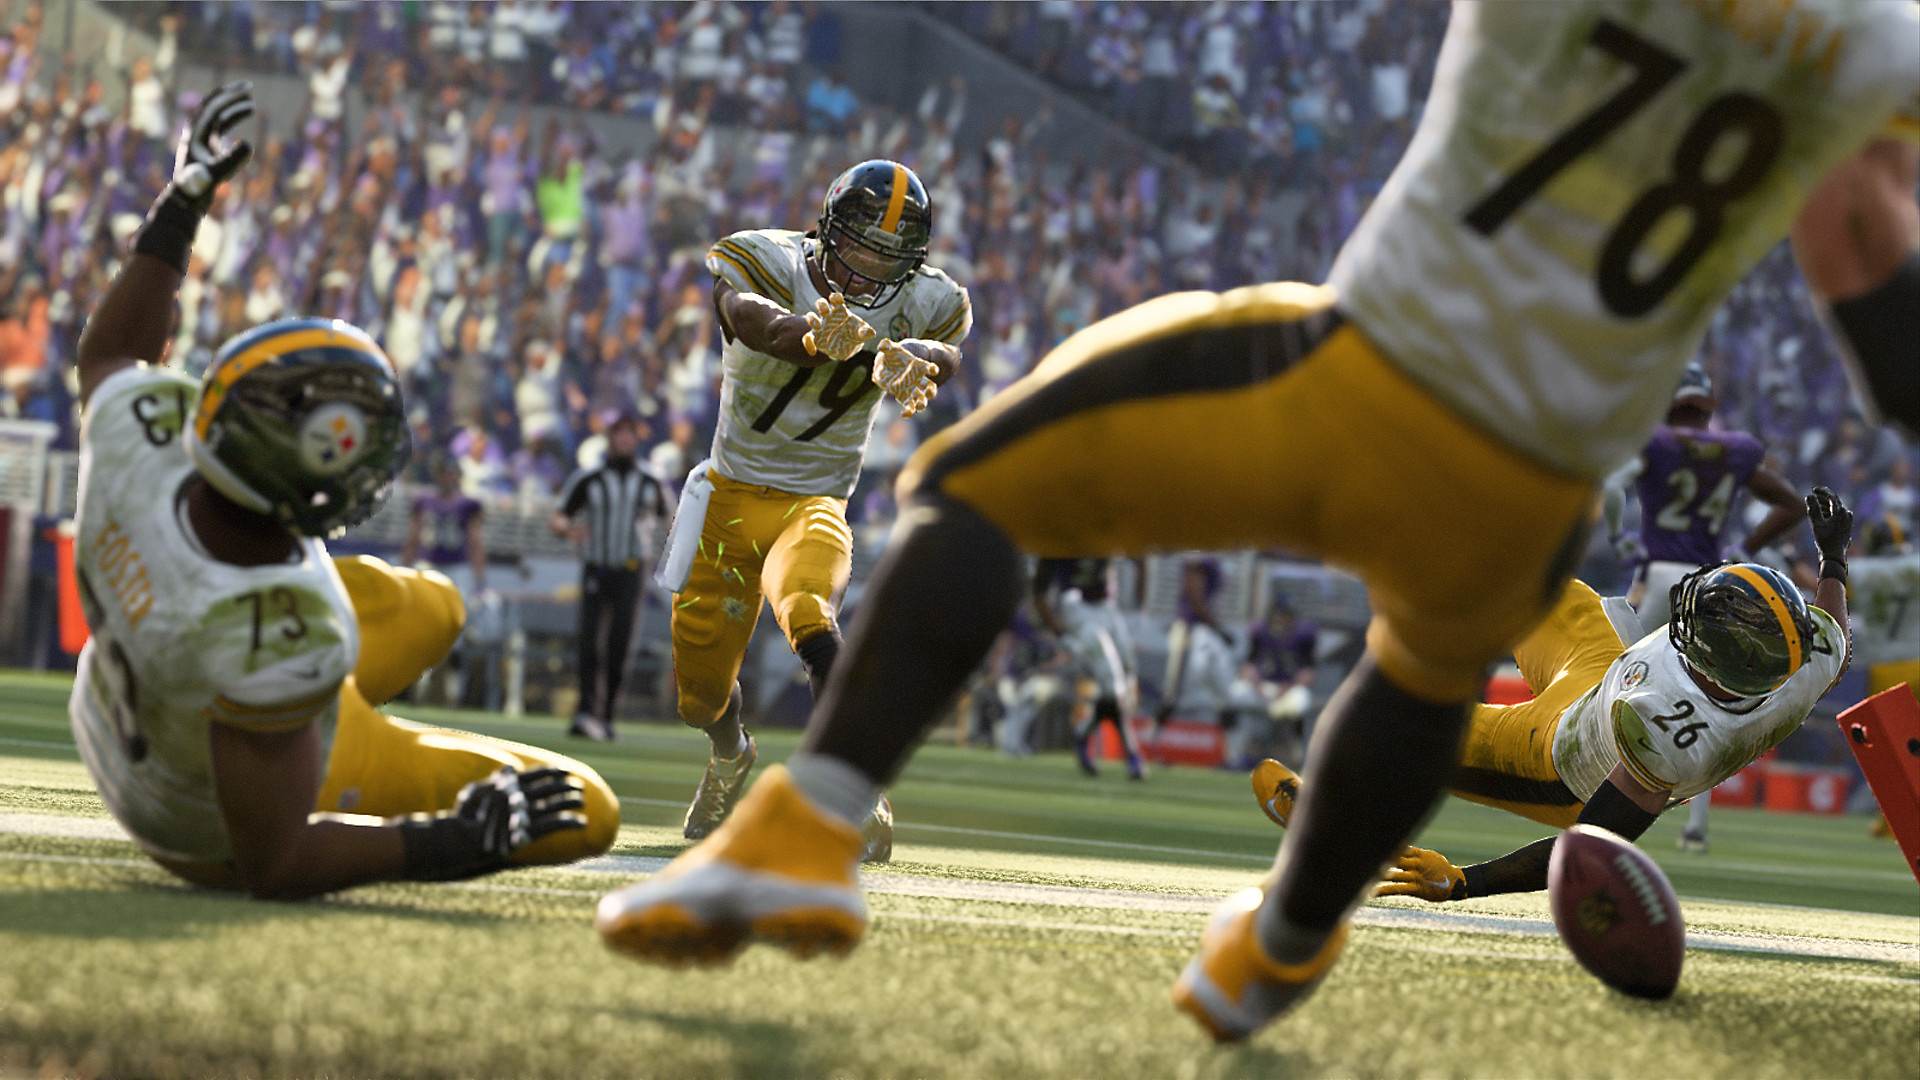 Madden NFL 19 Gameplay Screenshot - Ready to make the catch